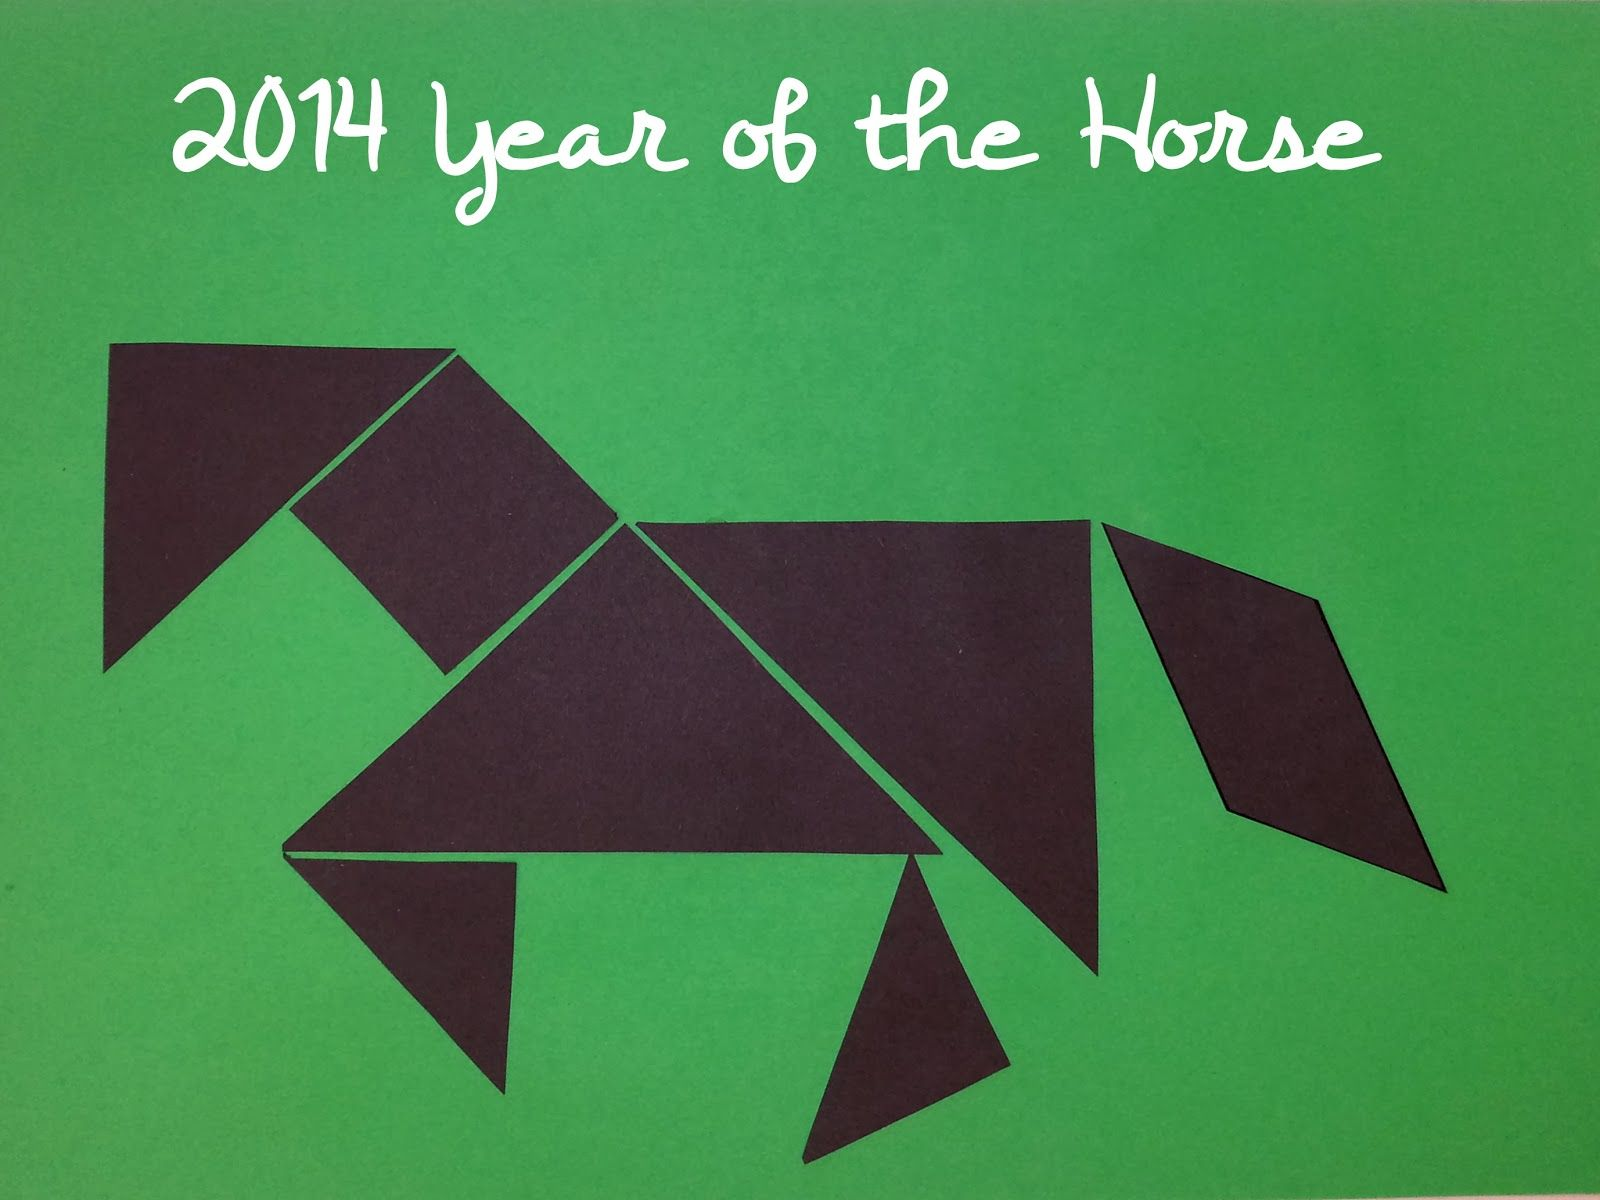 Chinese New Year Tangrams. Year of the Horse. Tangrams for